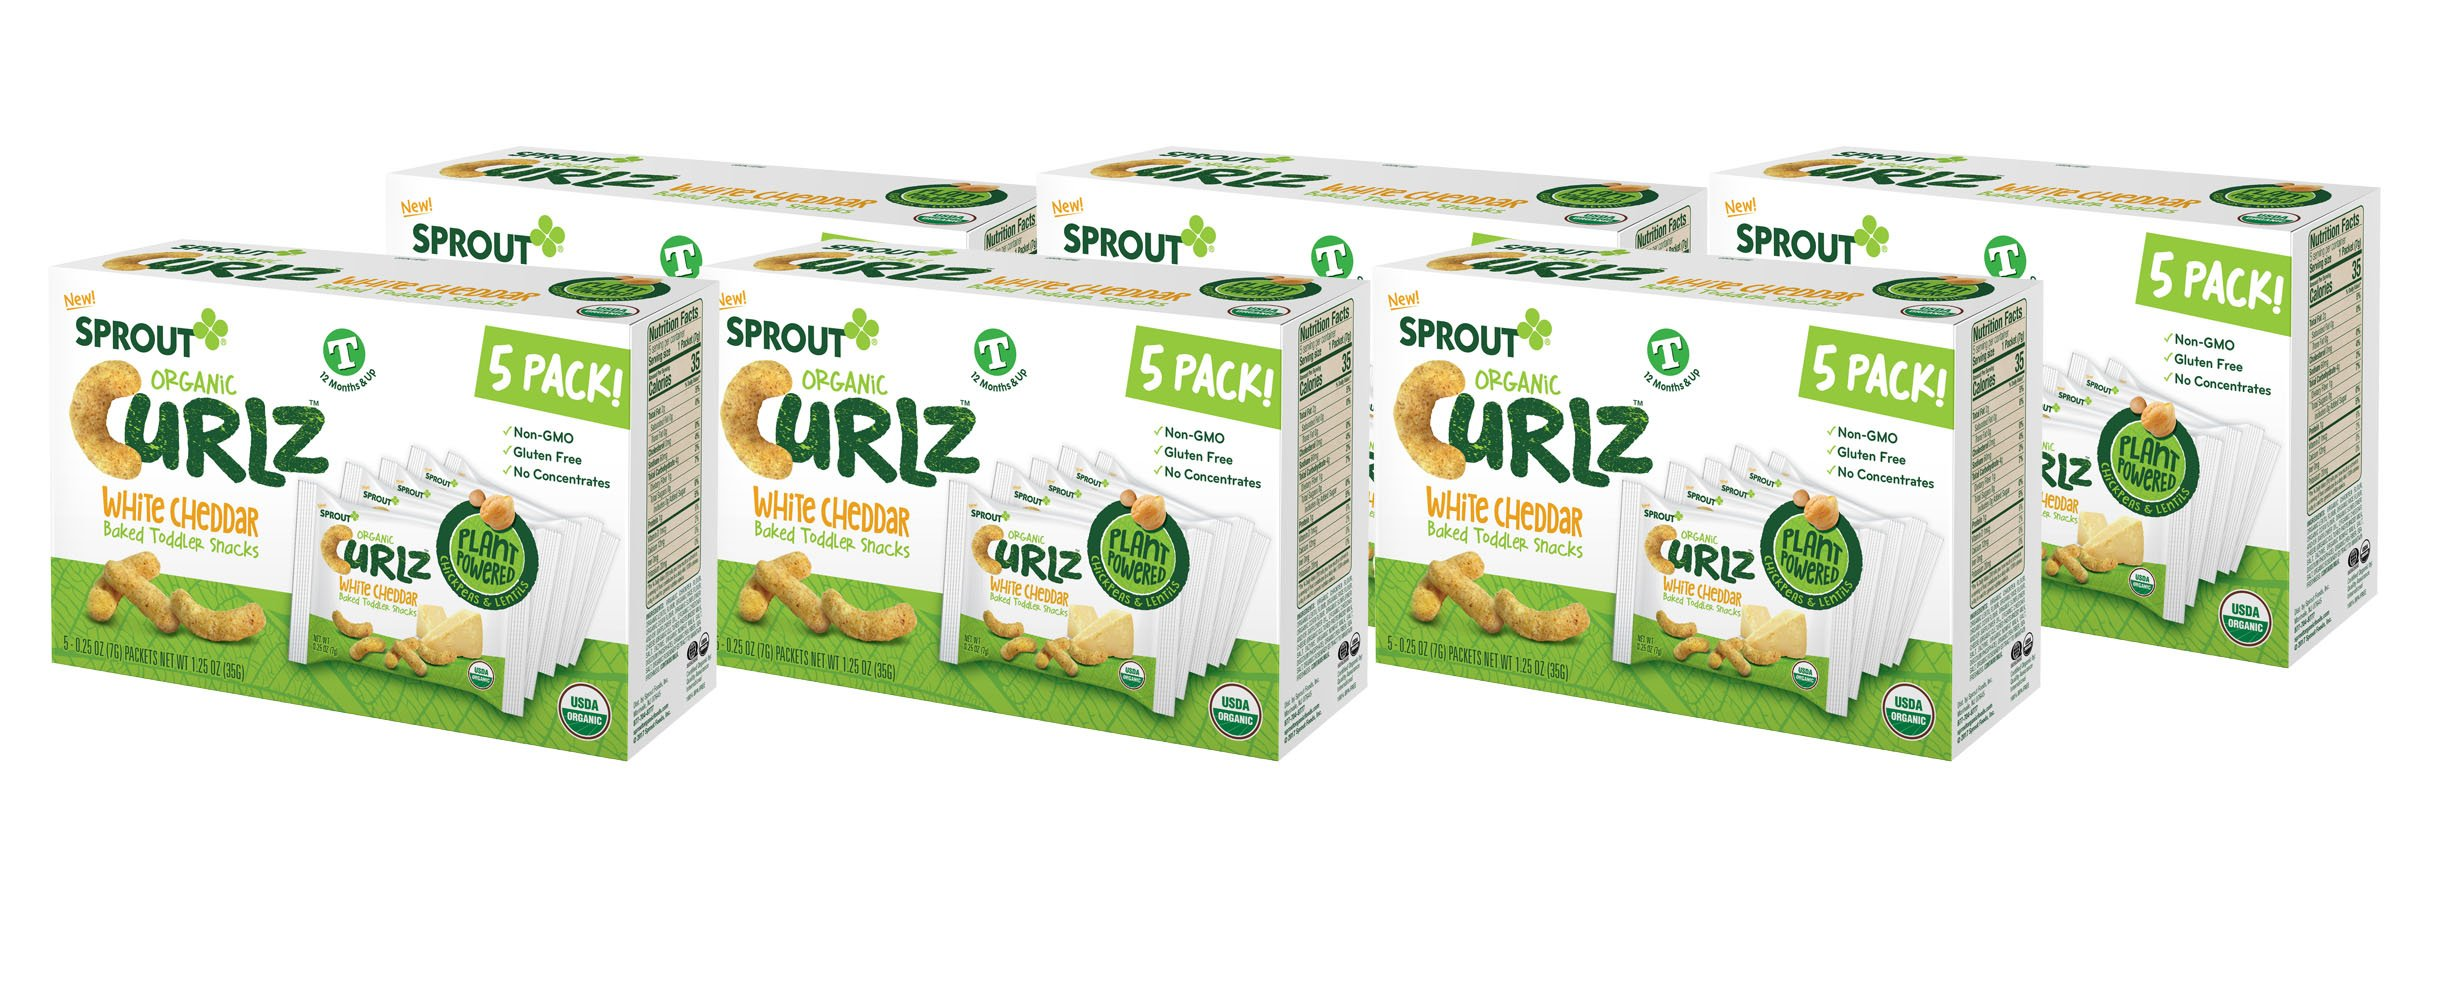 Sprout Organic Baby Food, Sprout Organic Curlz Toddler Snacks, Case of 30 White Cheddar Curlz packs (6 boxes, 5 packets per box)  Powered, Gluten Free, USDA Certified Organic, Nothing Artificial